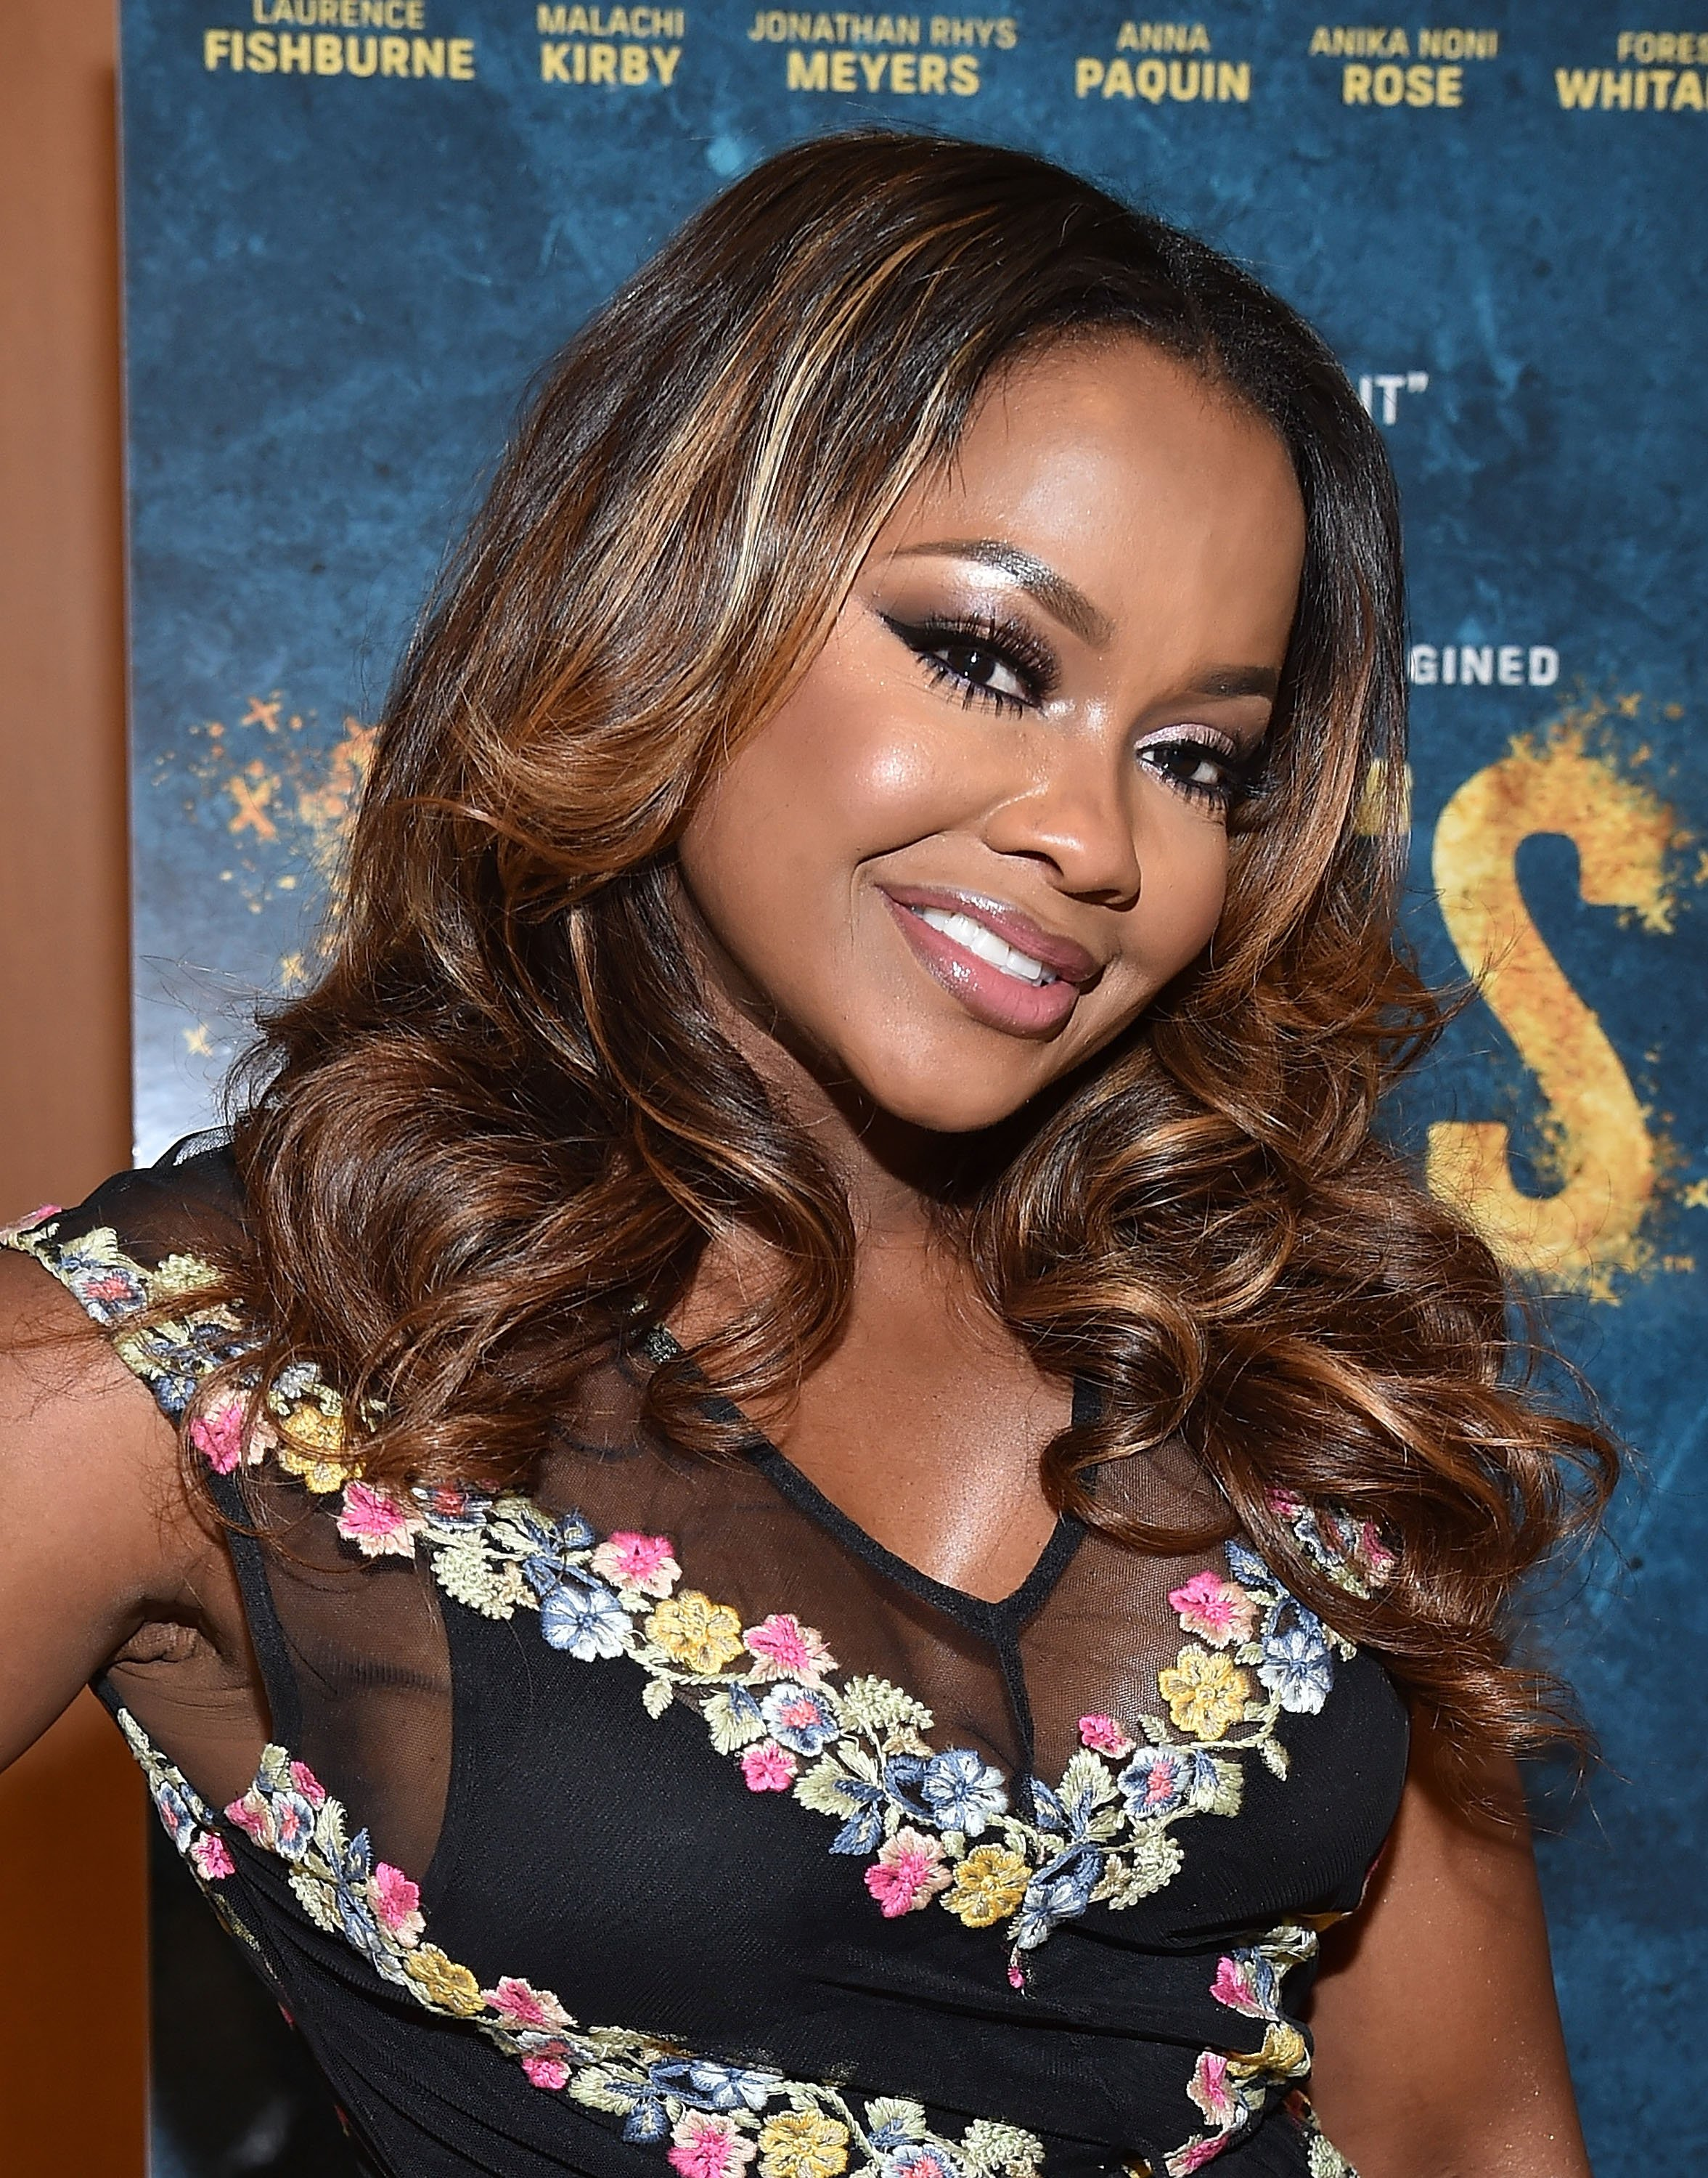 """""""ATLANTA, GA - MAY 09: (EXCLUSIVE COVERAGE) TV personality Phaedra Parks attends HISTORY's """"Roots"""" Atlanta advanced screening at National Center for Civil and Human Rights on May 9, 2016 in Atlanta, Georgia. (Photo by Paras Griffin/Getty Images for History/Roots)"""""""